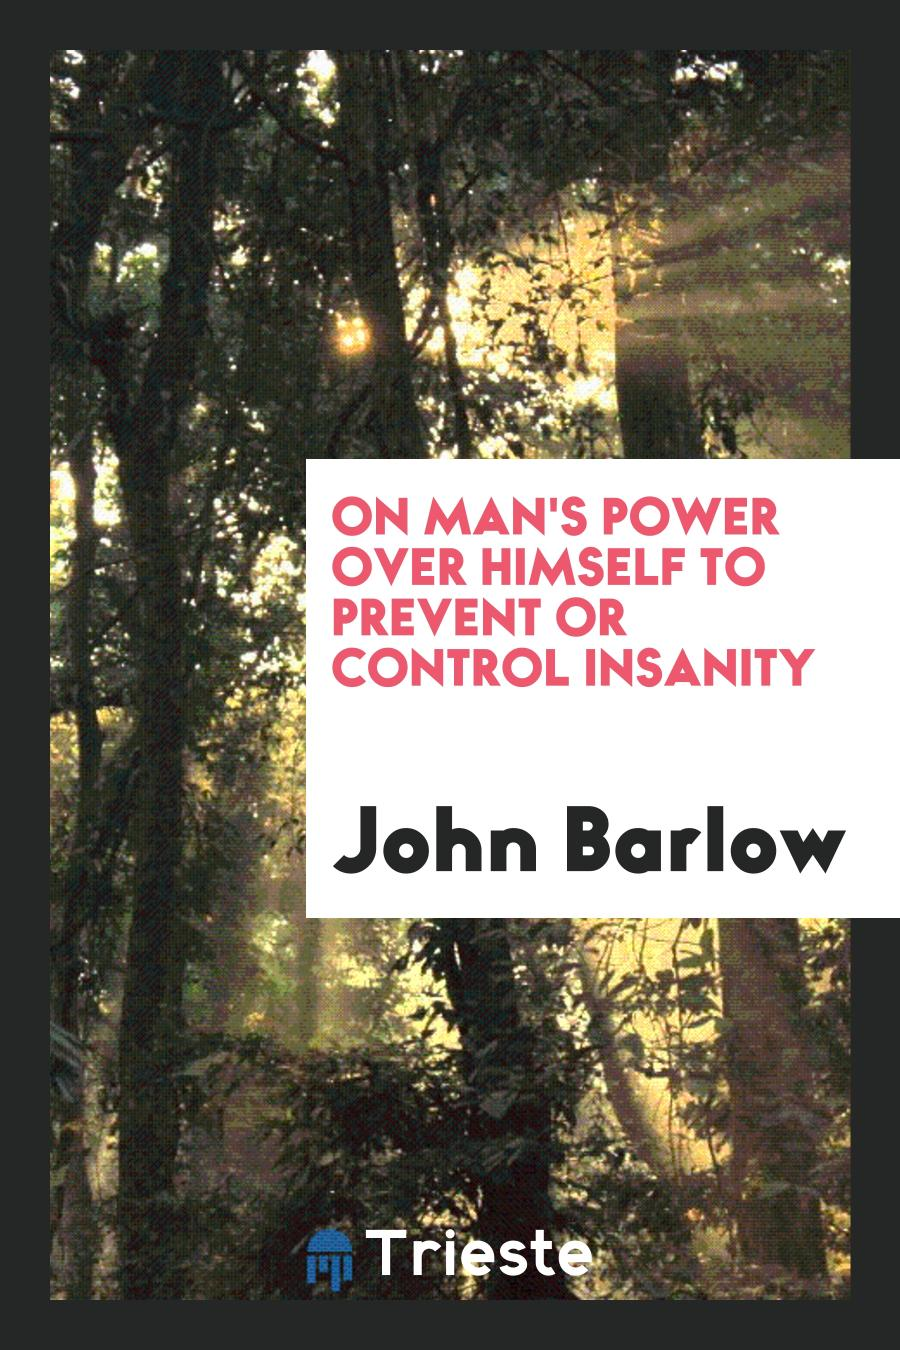 On man's power over himself to prevent or control insanity